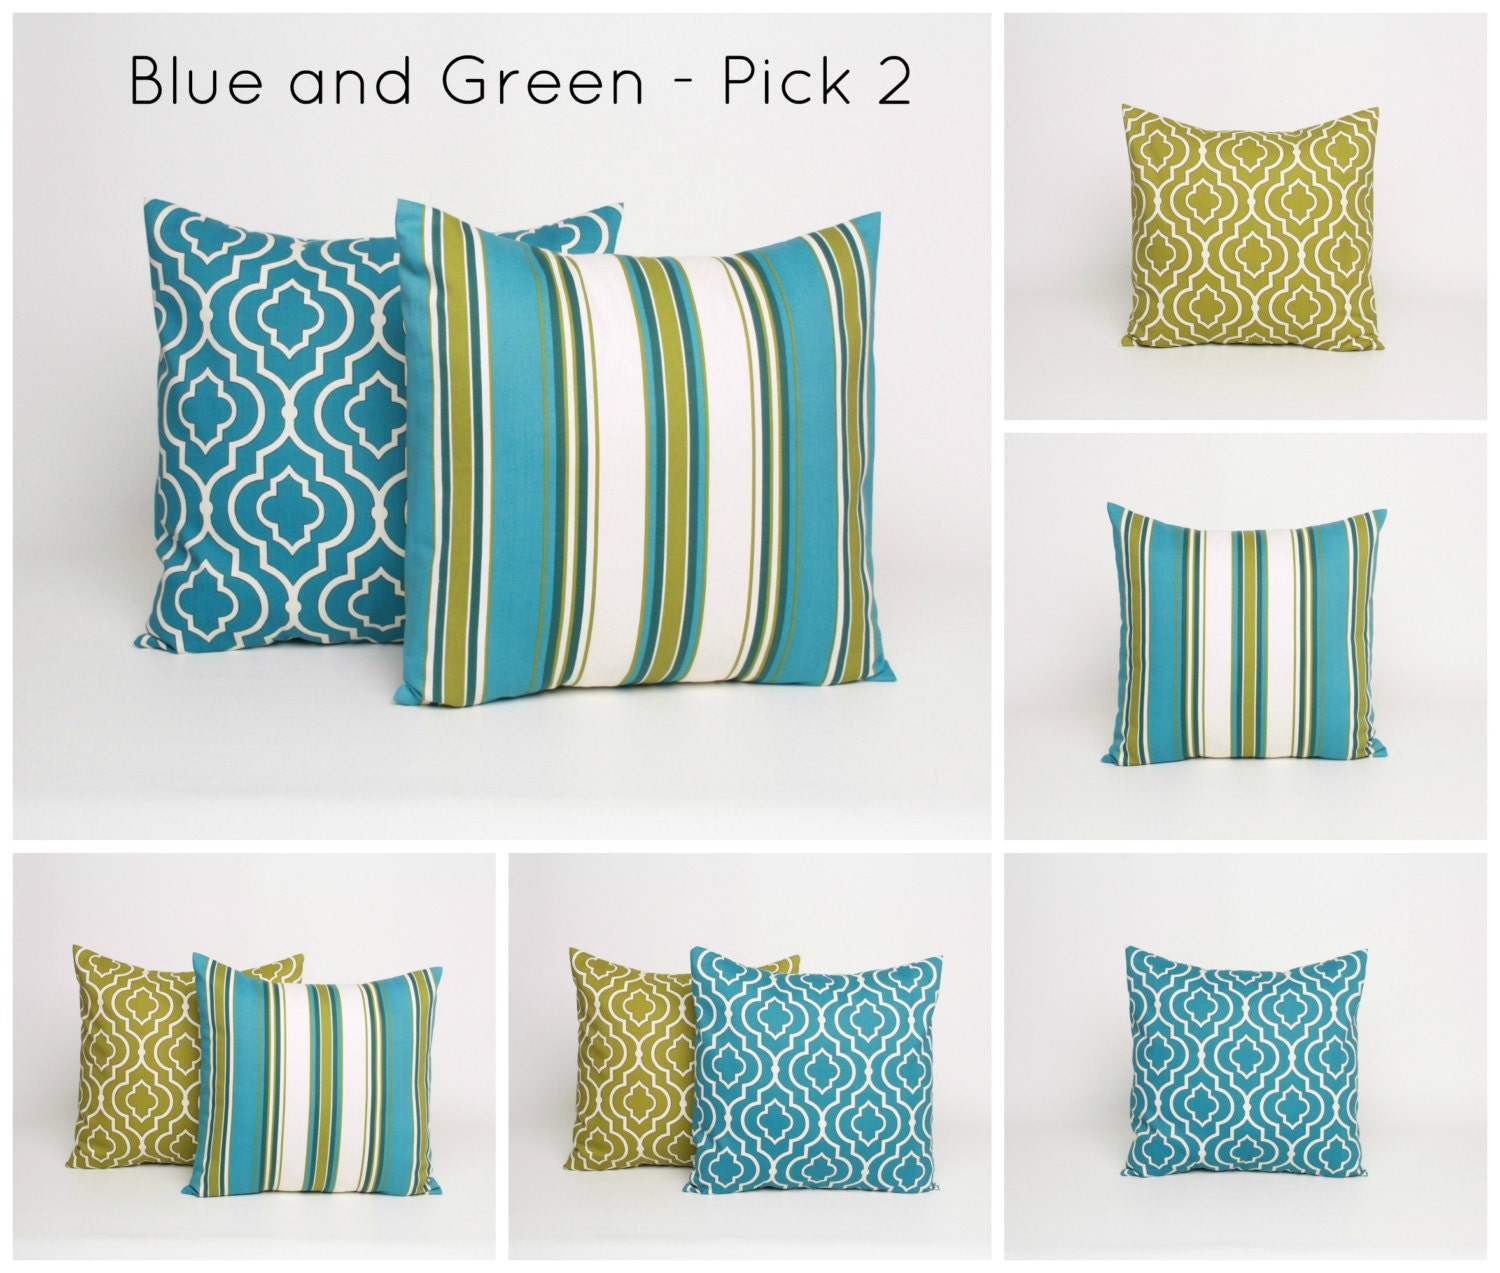 Olive Green And Blue Throw Pillows : Set of 2 Green and Blue Throw Pillow PAIR by DimensionsHomeDecor